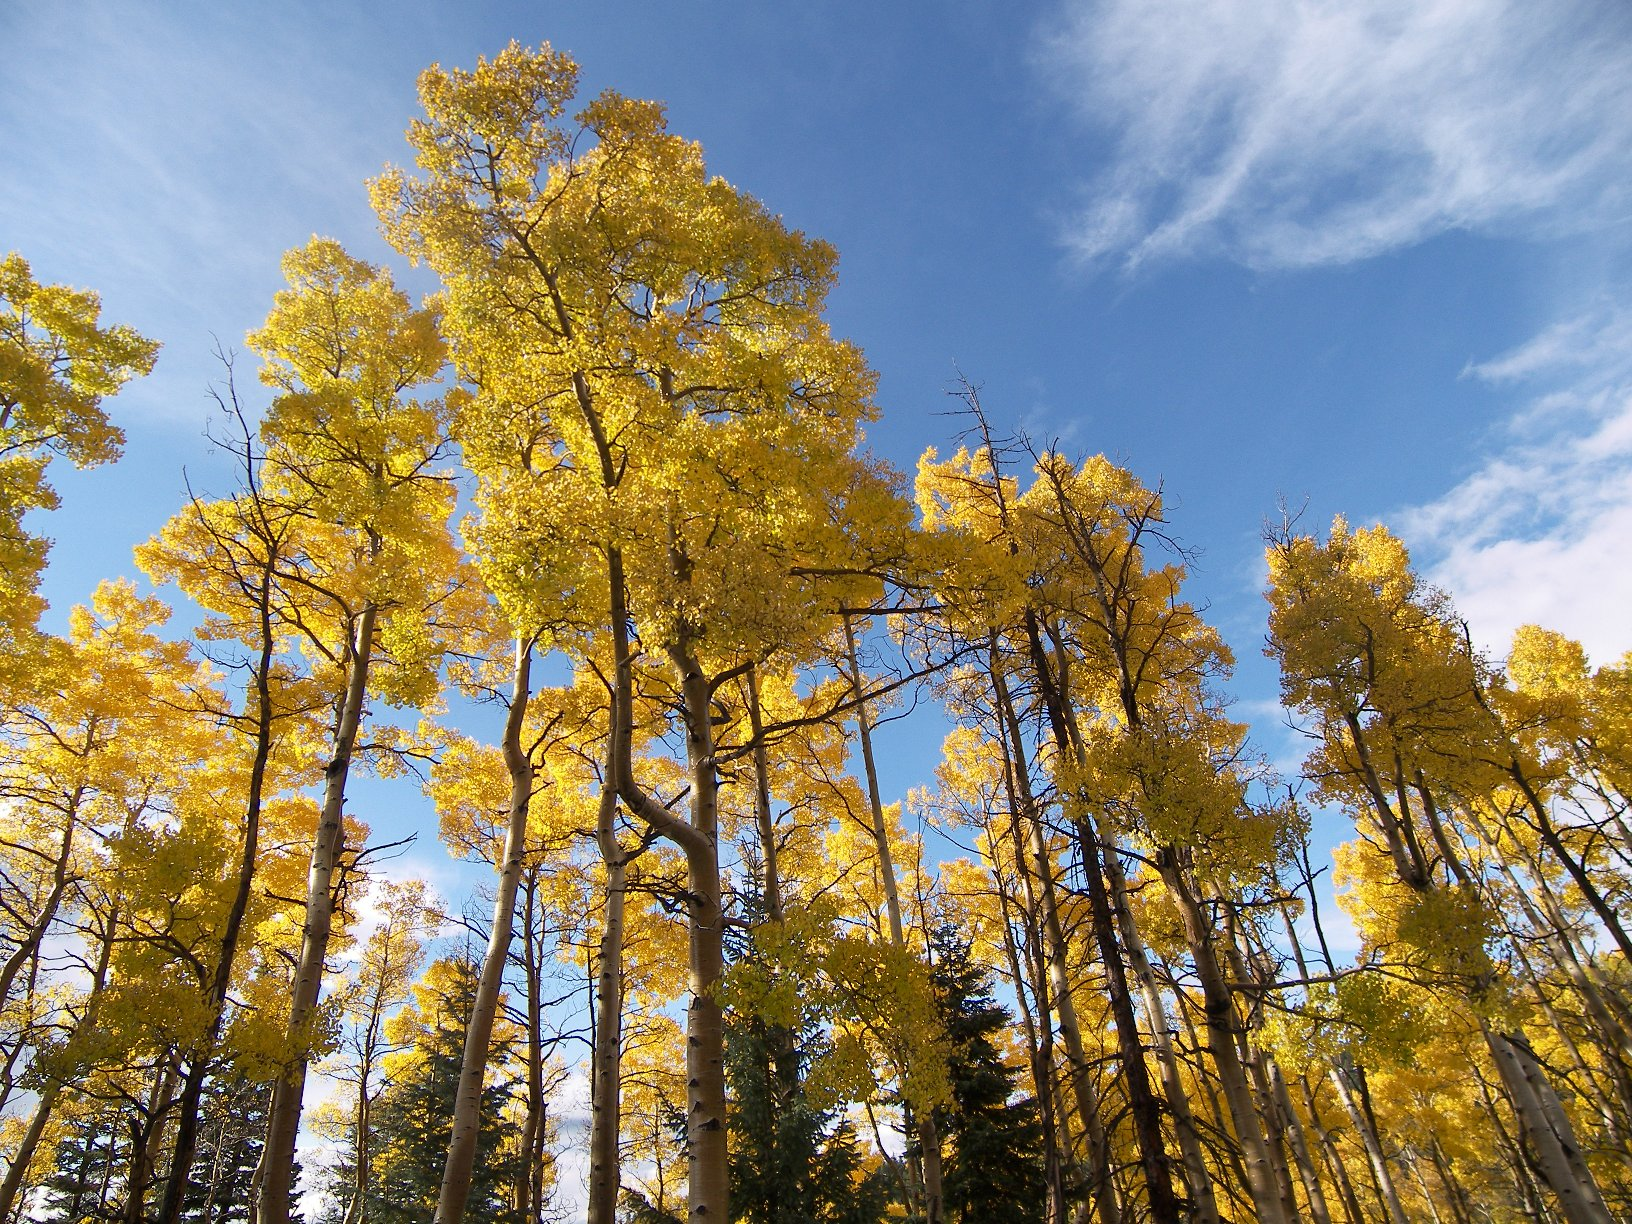 santa fe national forest, new mexico, rocky mountains, forest